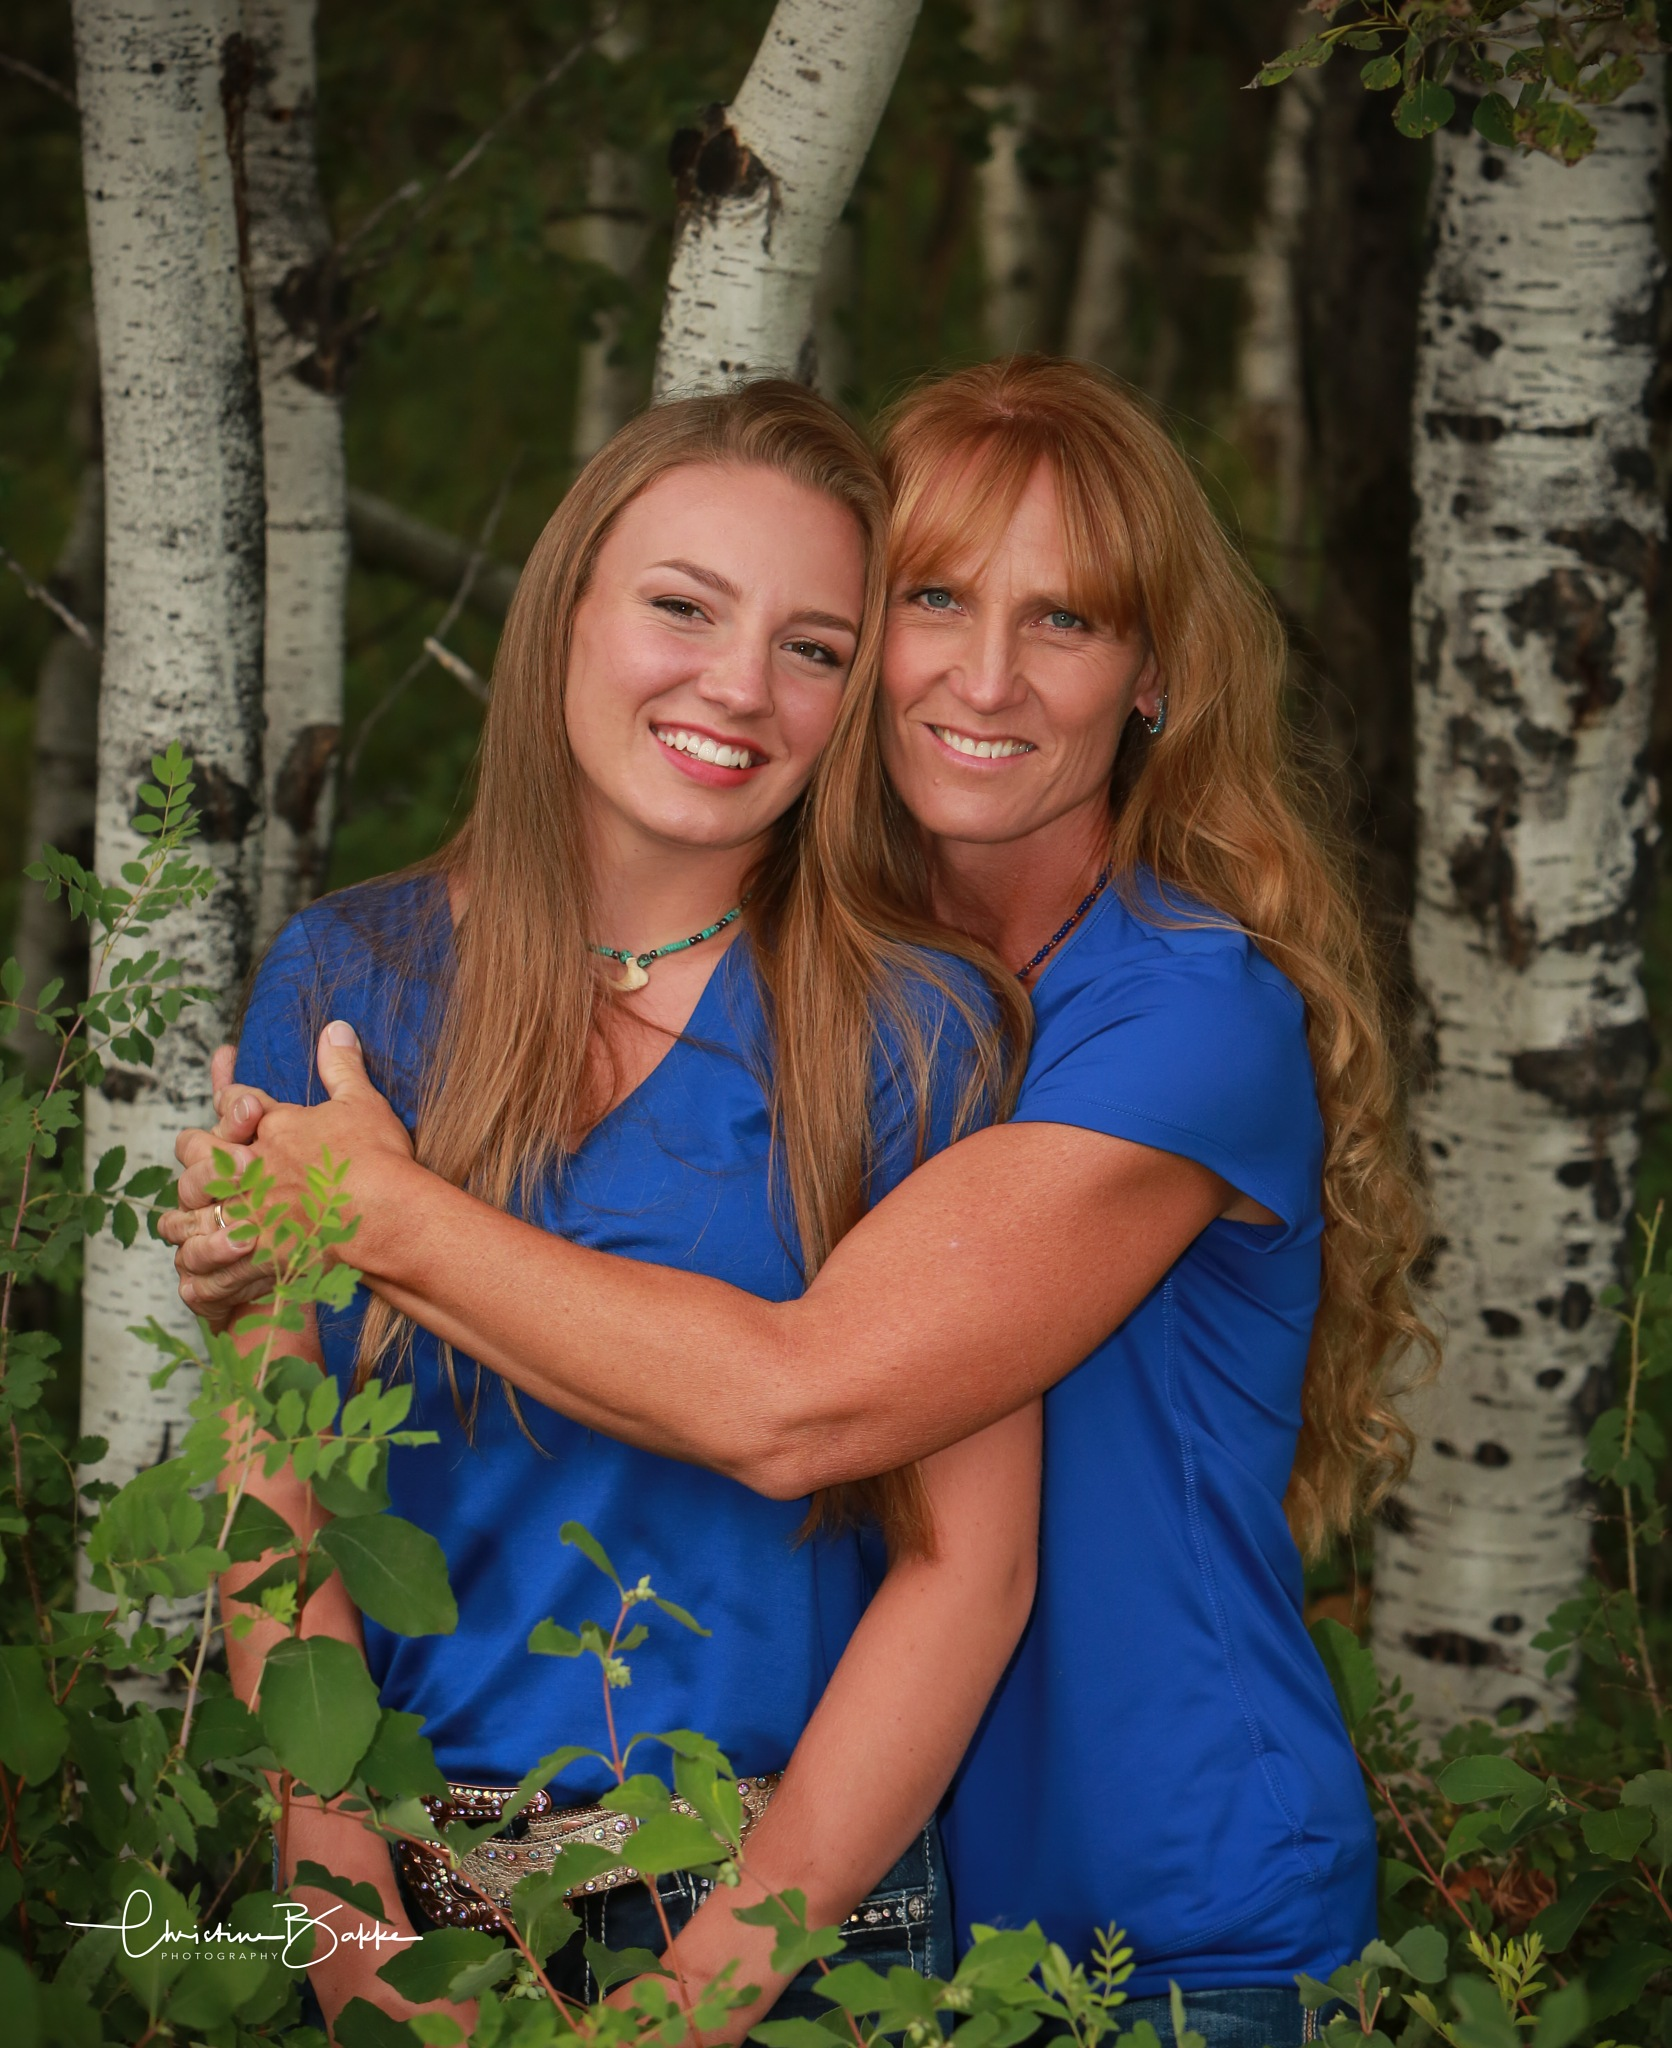 Pretty mama and daughter by Christine Bakke